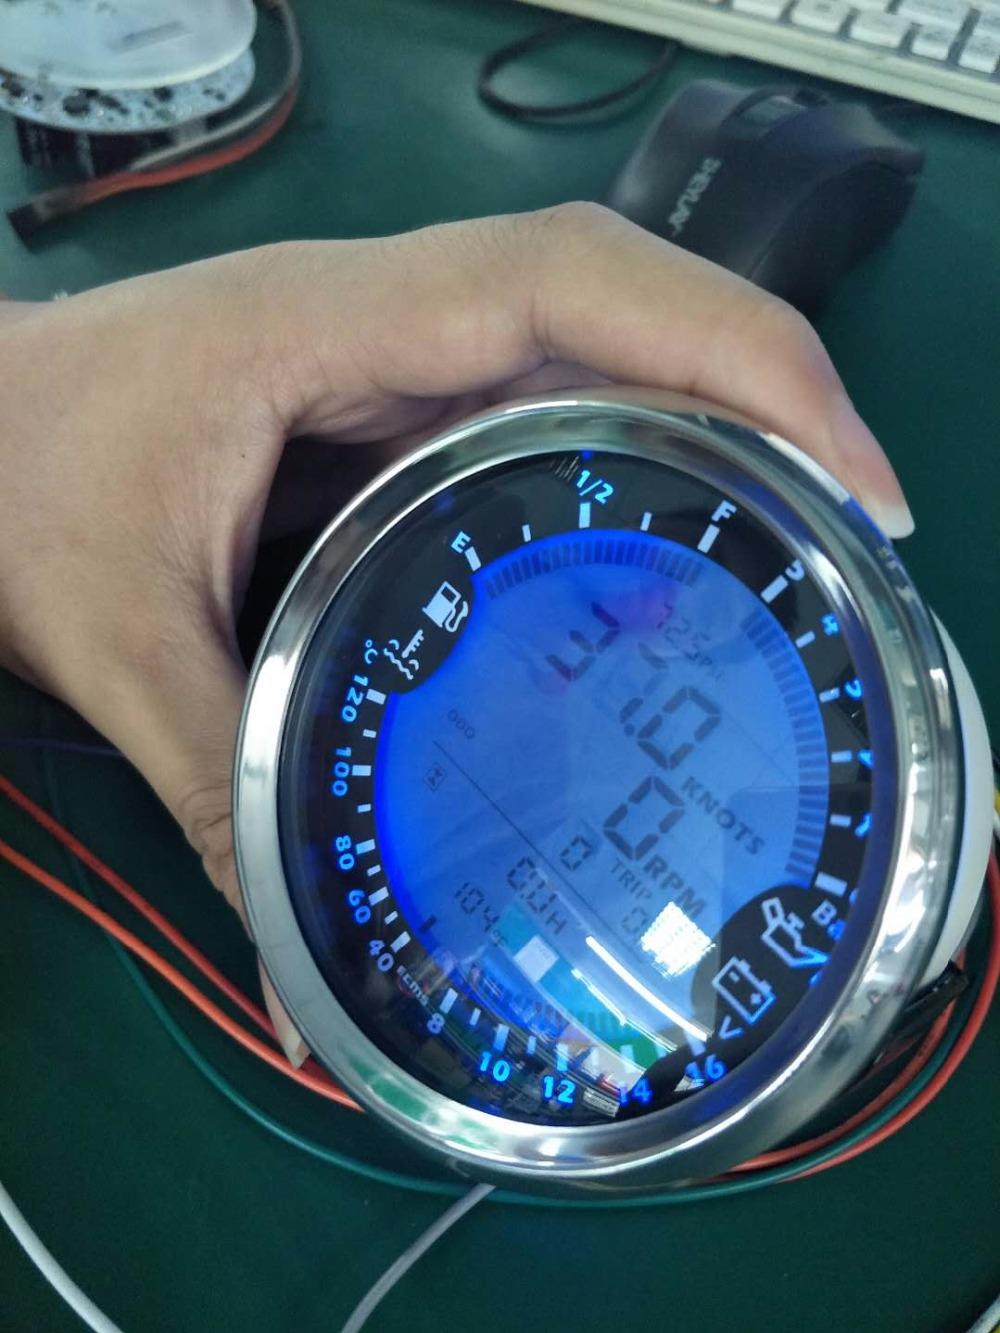 New 6 In 1 Multi Functional Gauge Meter Gps Speedometer Tachometer Speedometers Speed Sensor Vdo 37912847678053419 3 8